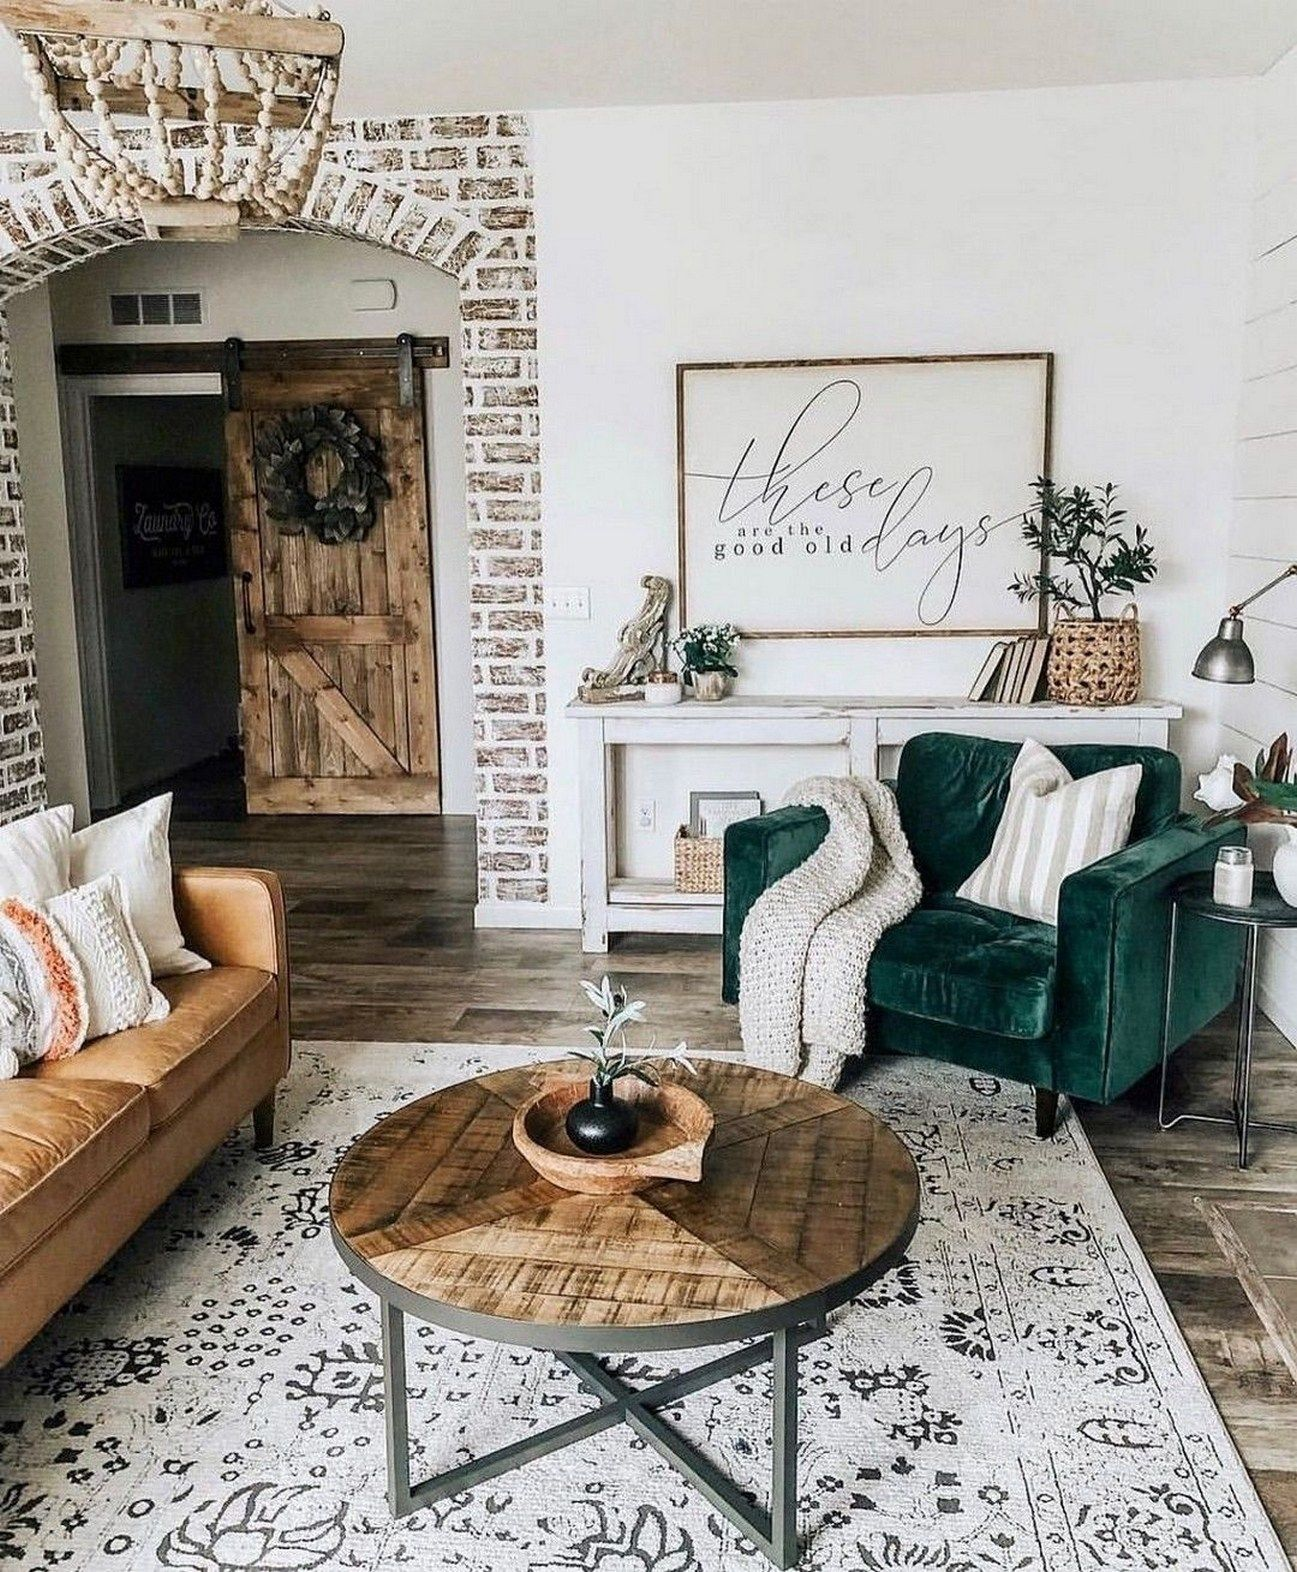 Top 27 Options For Decorating And Beautiful Living Room Design Ideas Here Are In 2020 Farmhouse Decor Living Room Farm House Living Room Living Room Decor Apartment